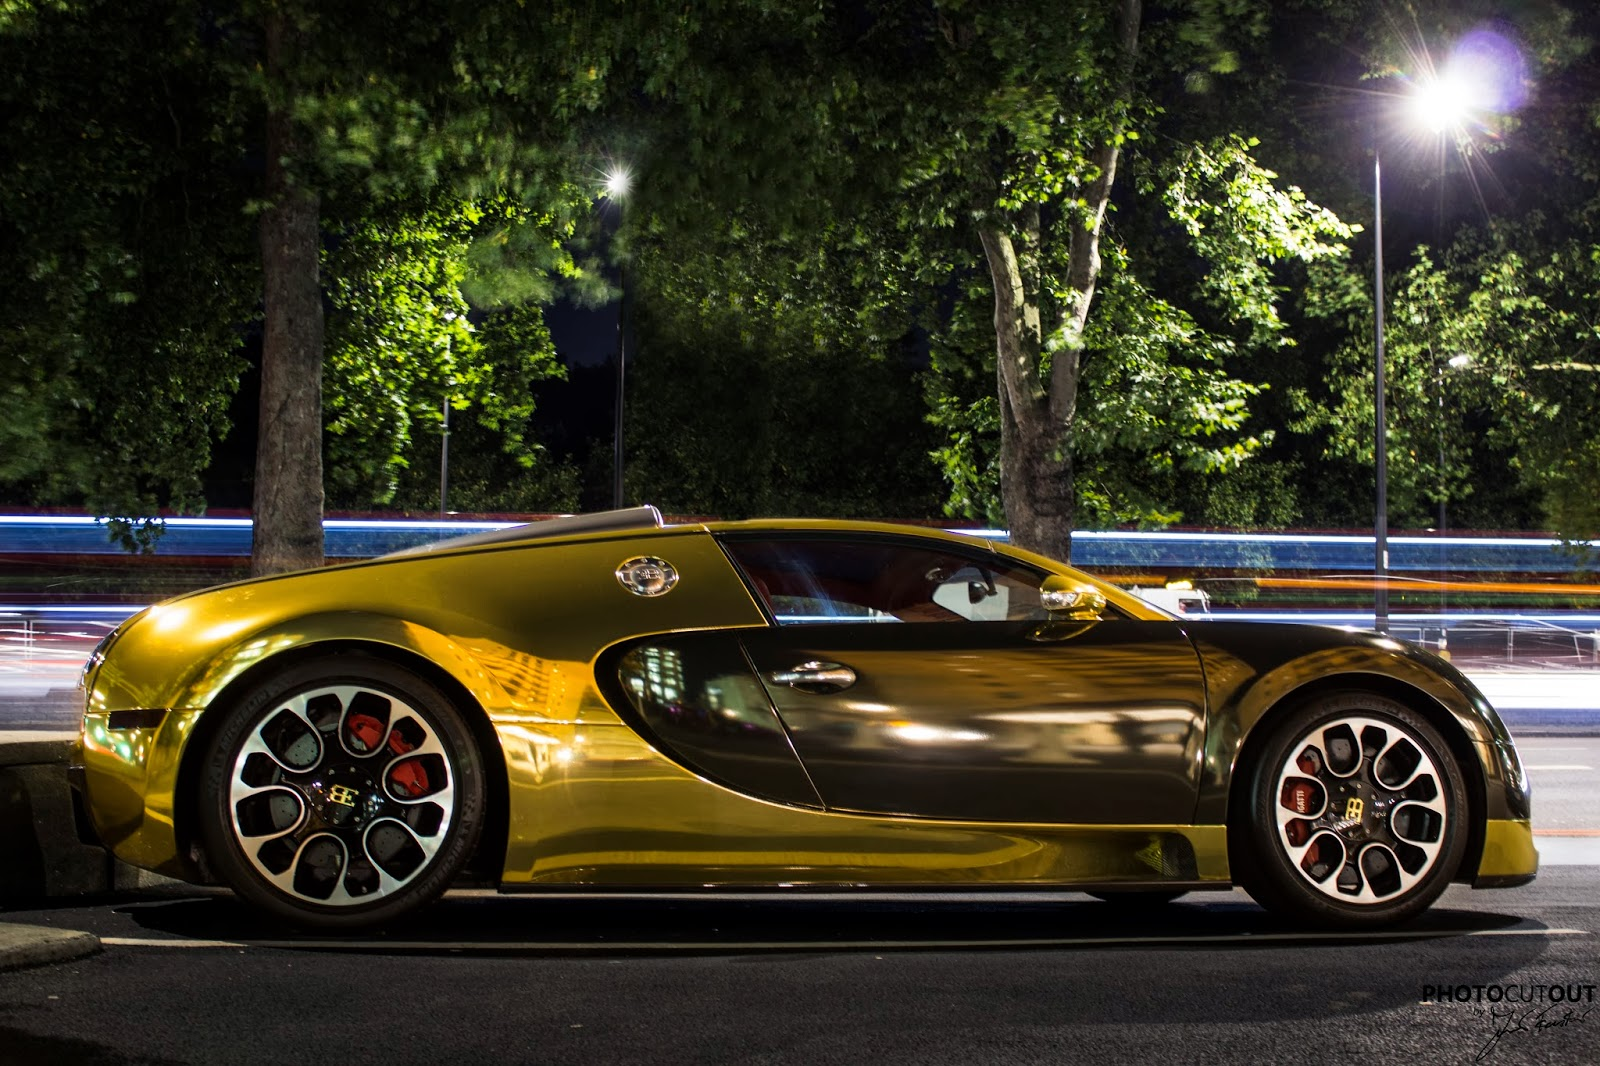 chrome gold car wallpaper - photo #27